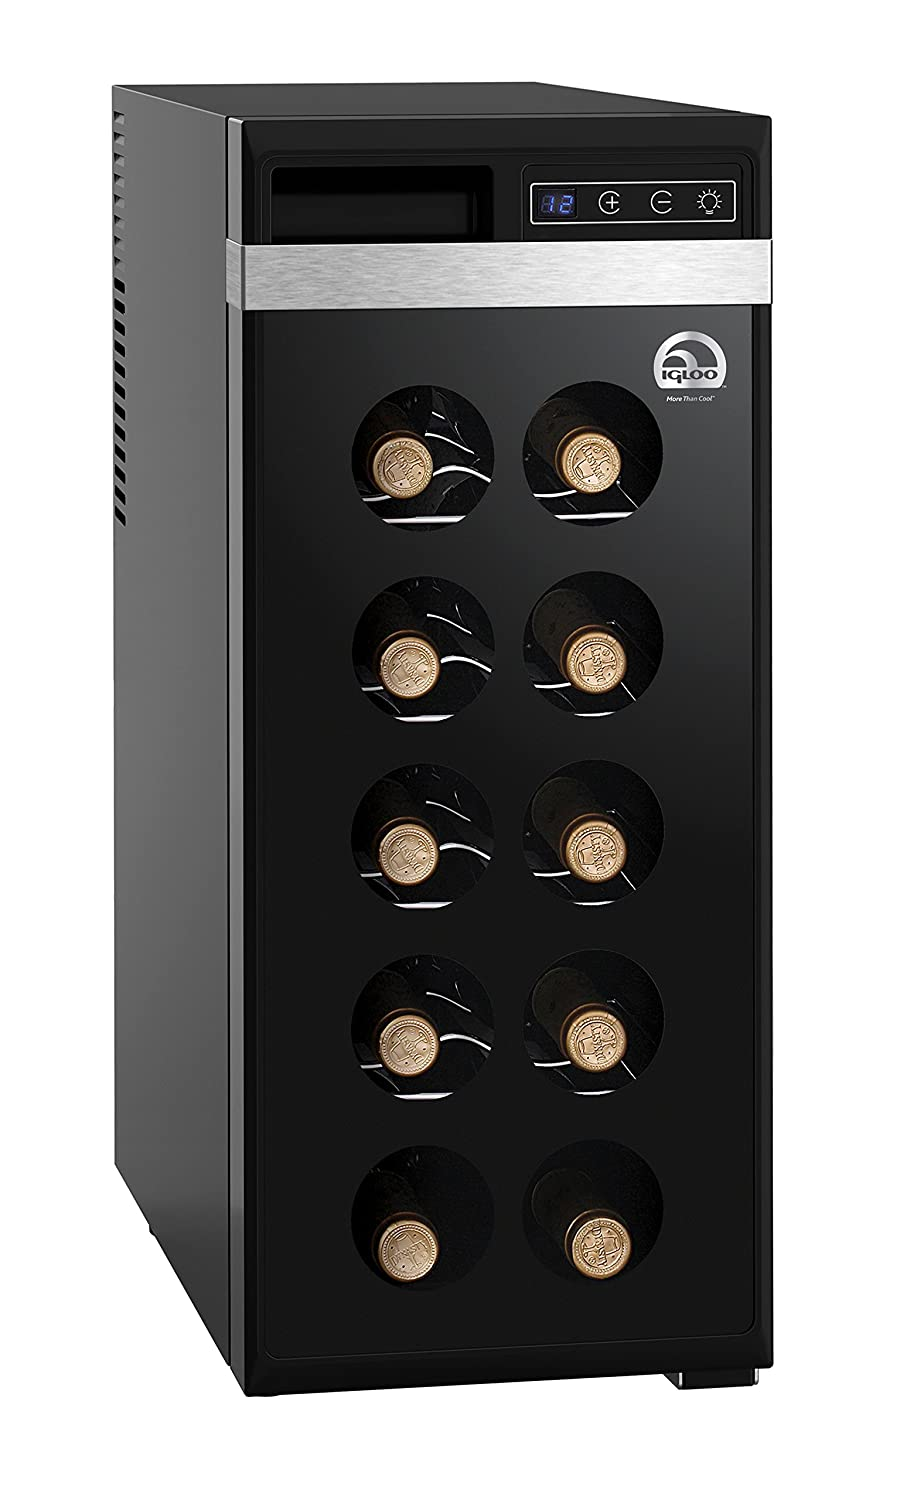 12 Bottle Wine Fridge Part - 24: Amazon.com: IGLOO FRW1213 12-Bottle Wine Cooler With Digital Controls,  Black: Kitchen U0026 Dining